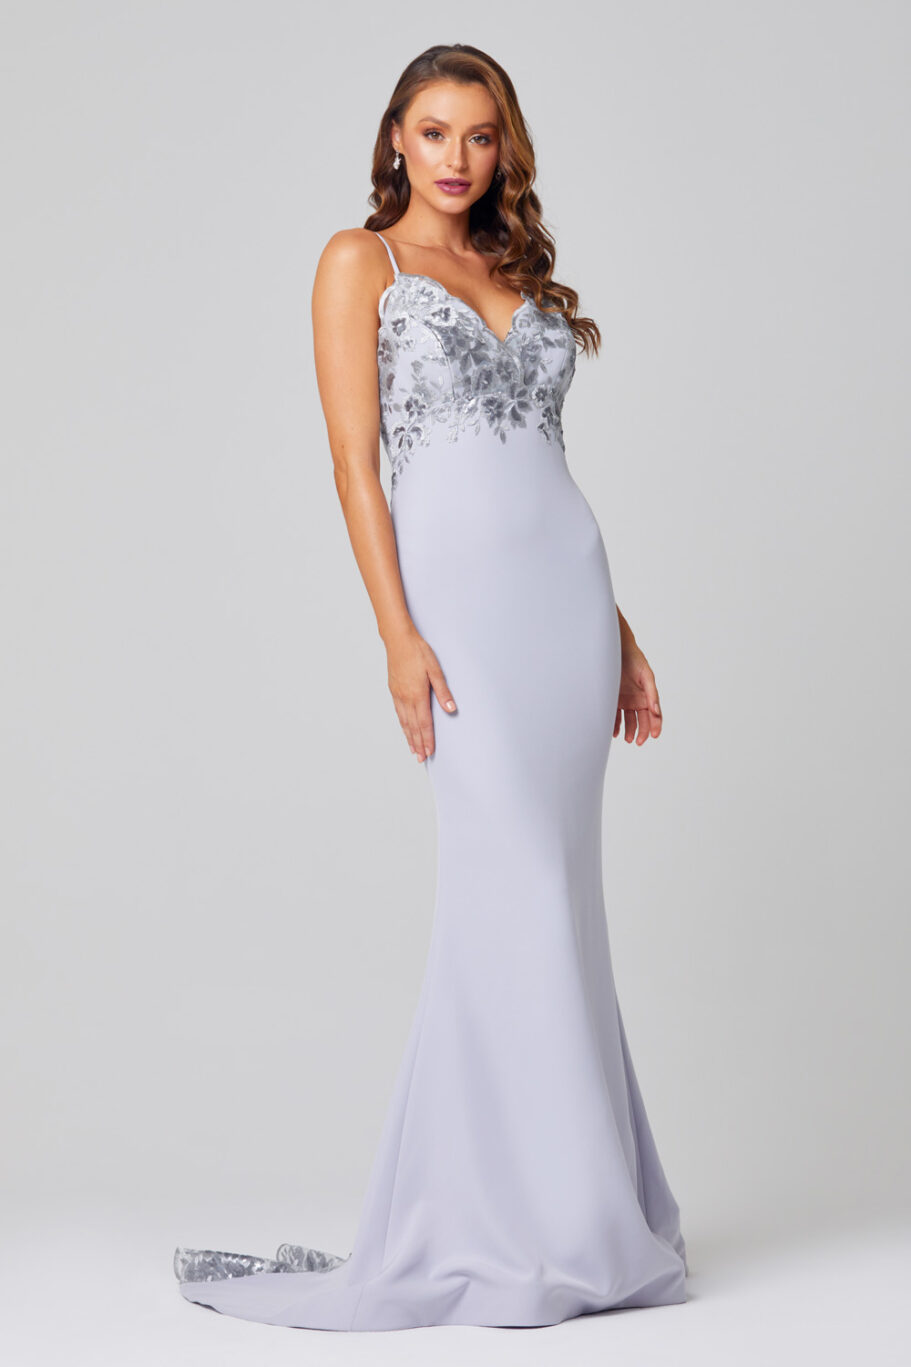 Pippa Low Back Sequin Lace Formal Dress -PO888 side